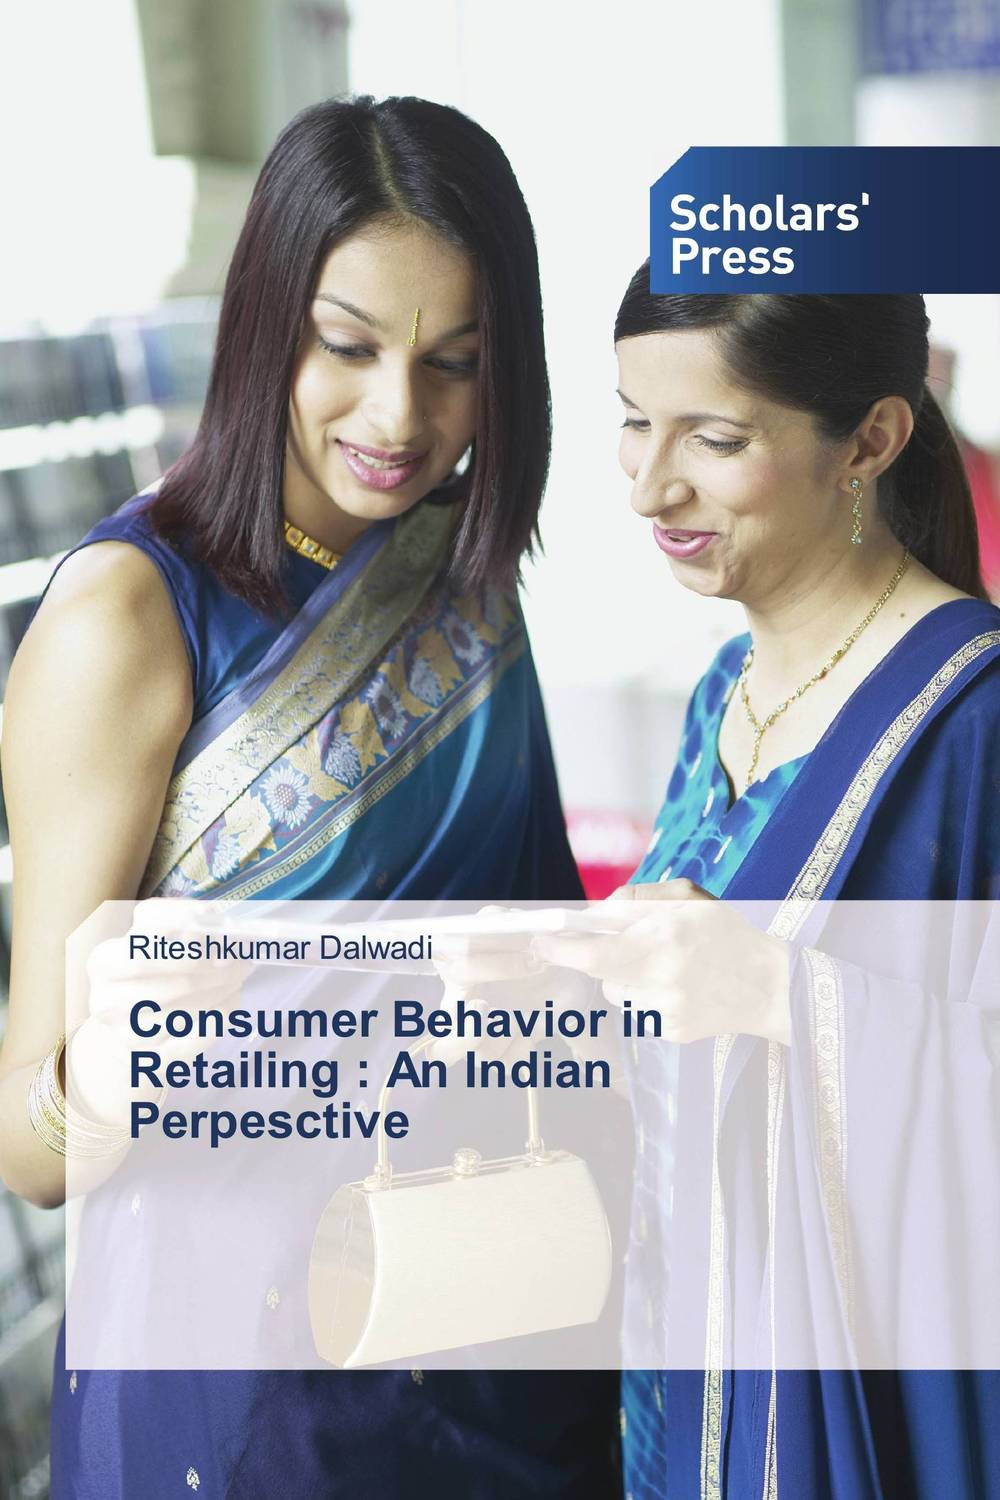 Consumer Behavior in Retailing : An Indian Perpesctive ripudaman singh gurkamal singh and amandeep kaur brea indian consumer behaviour